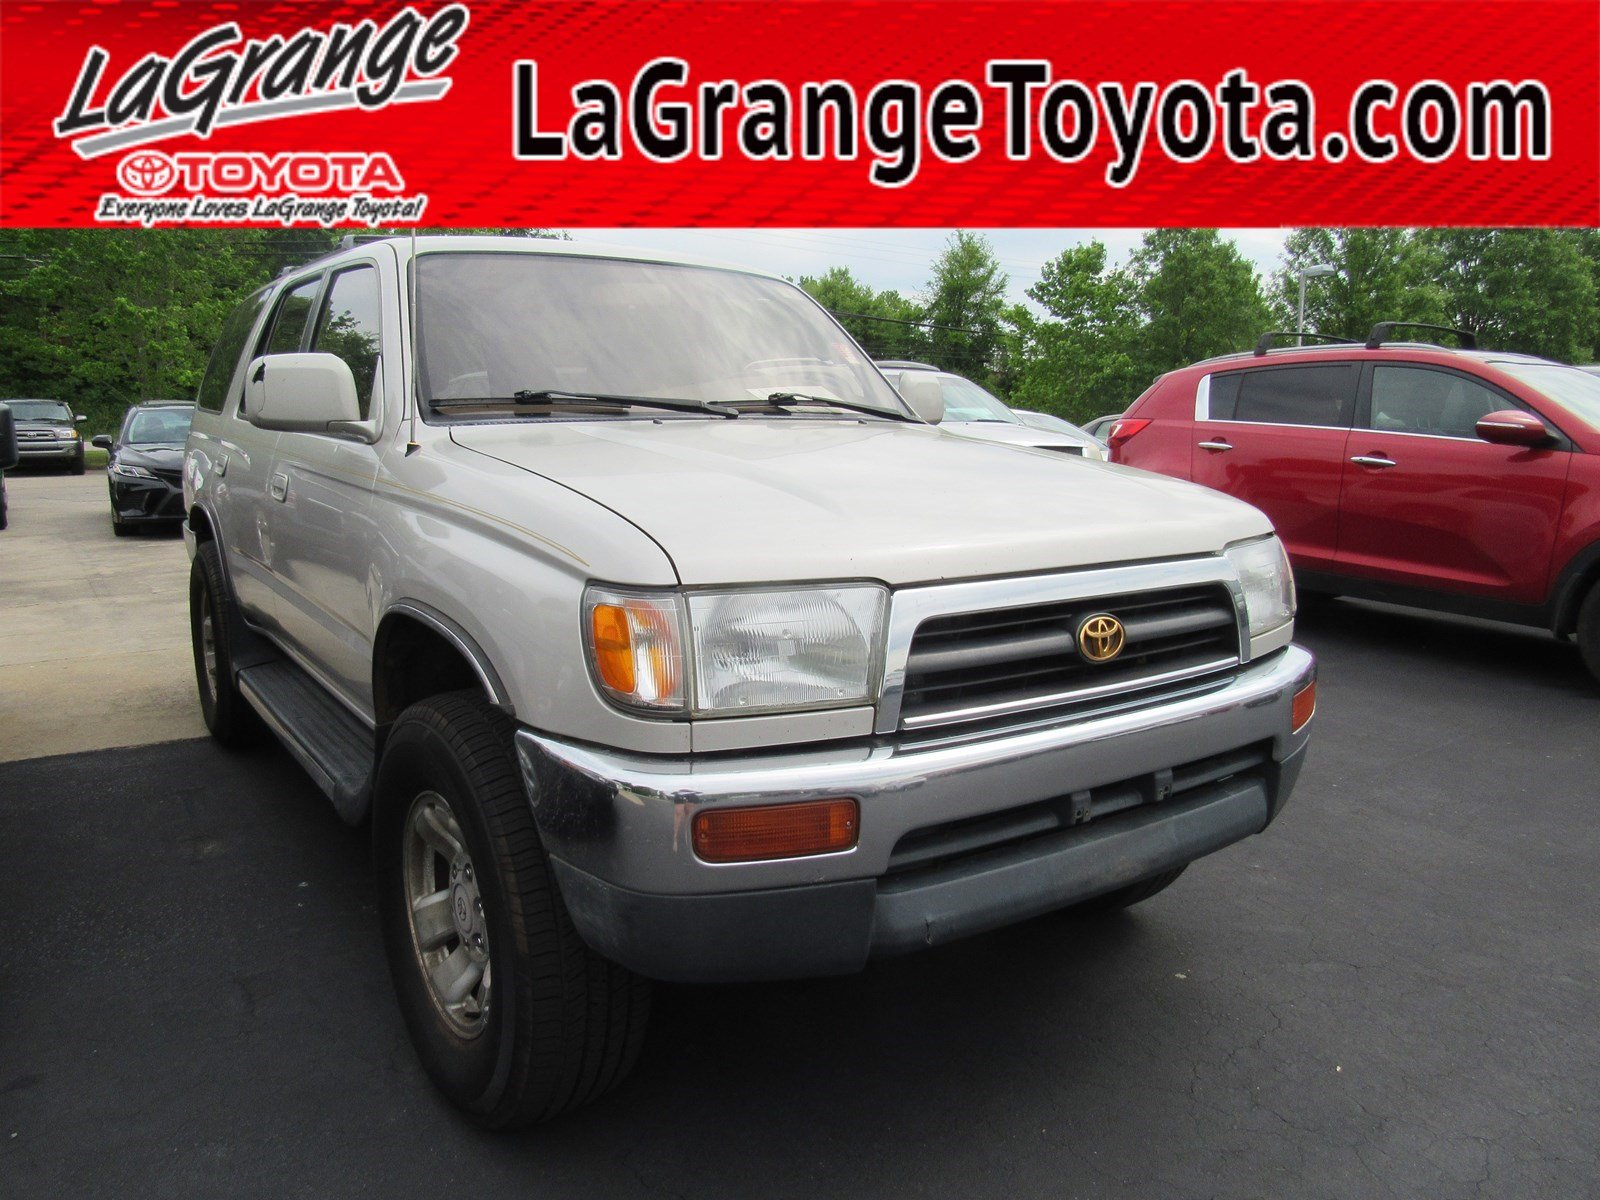 Pre-Owned 1997 Toyota 4Runner 4dr SR5 3.4L Auto 4WD